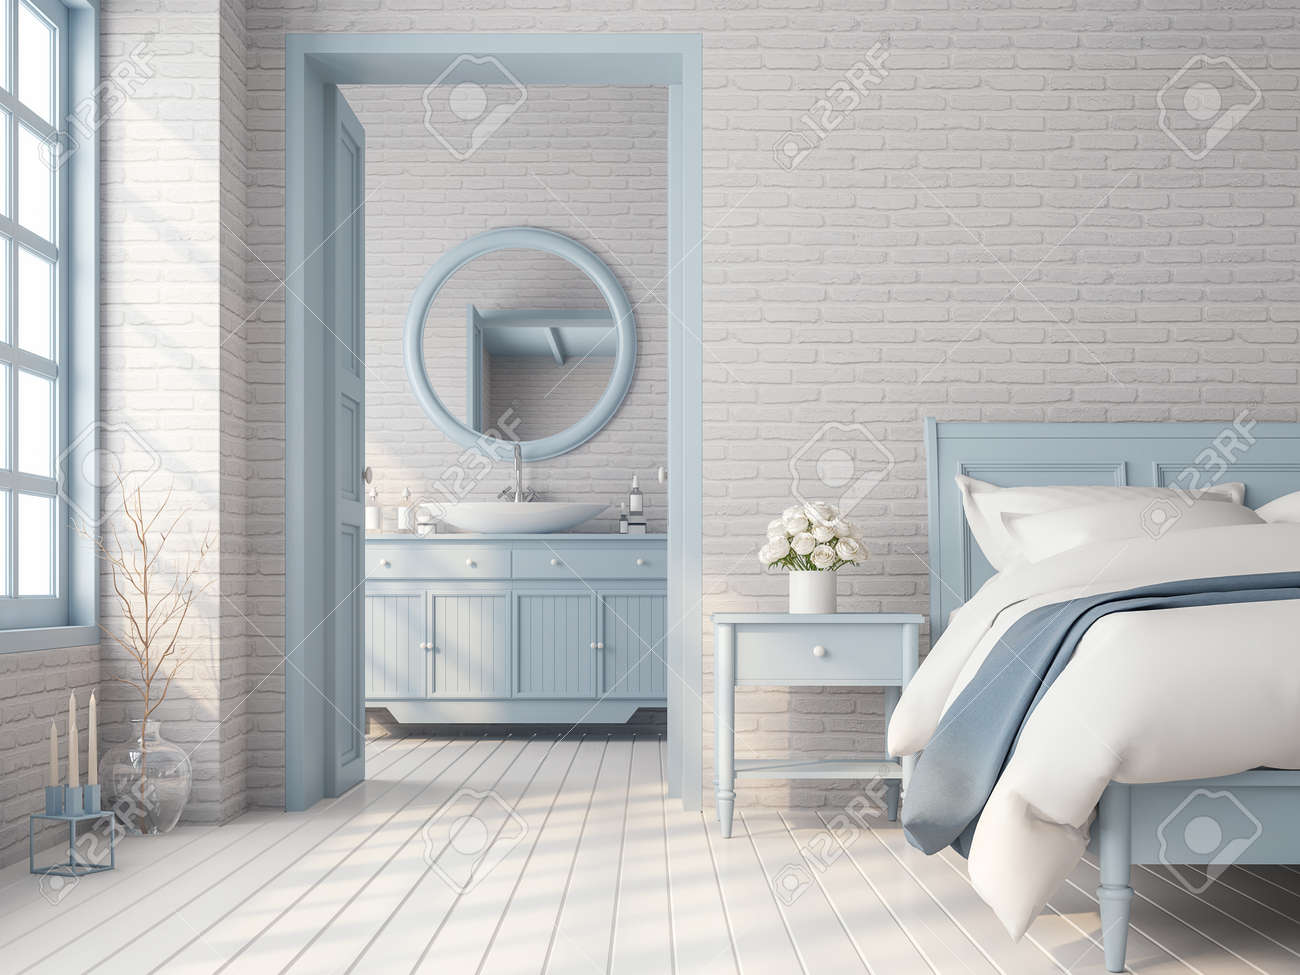 Vintage bedroom and bathroom 3d render,There are white brick..